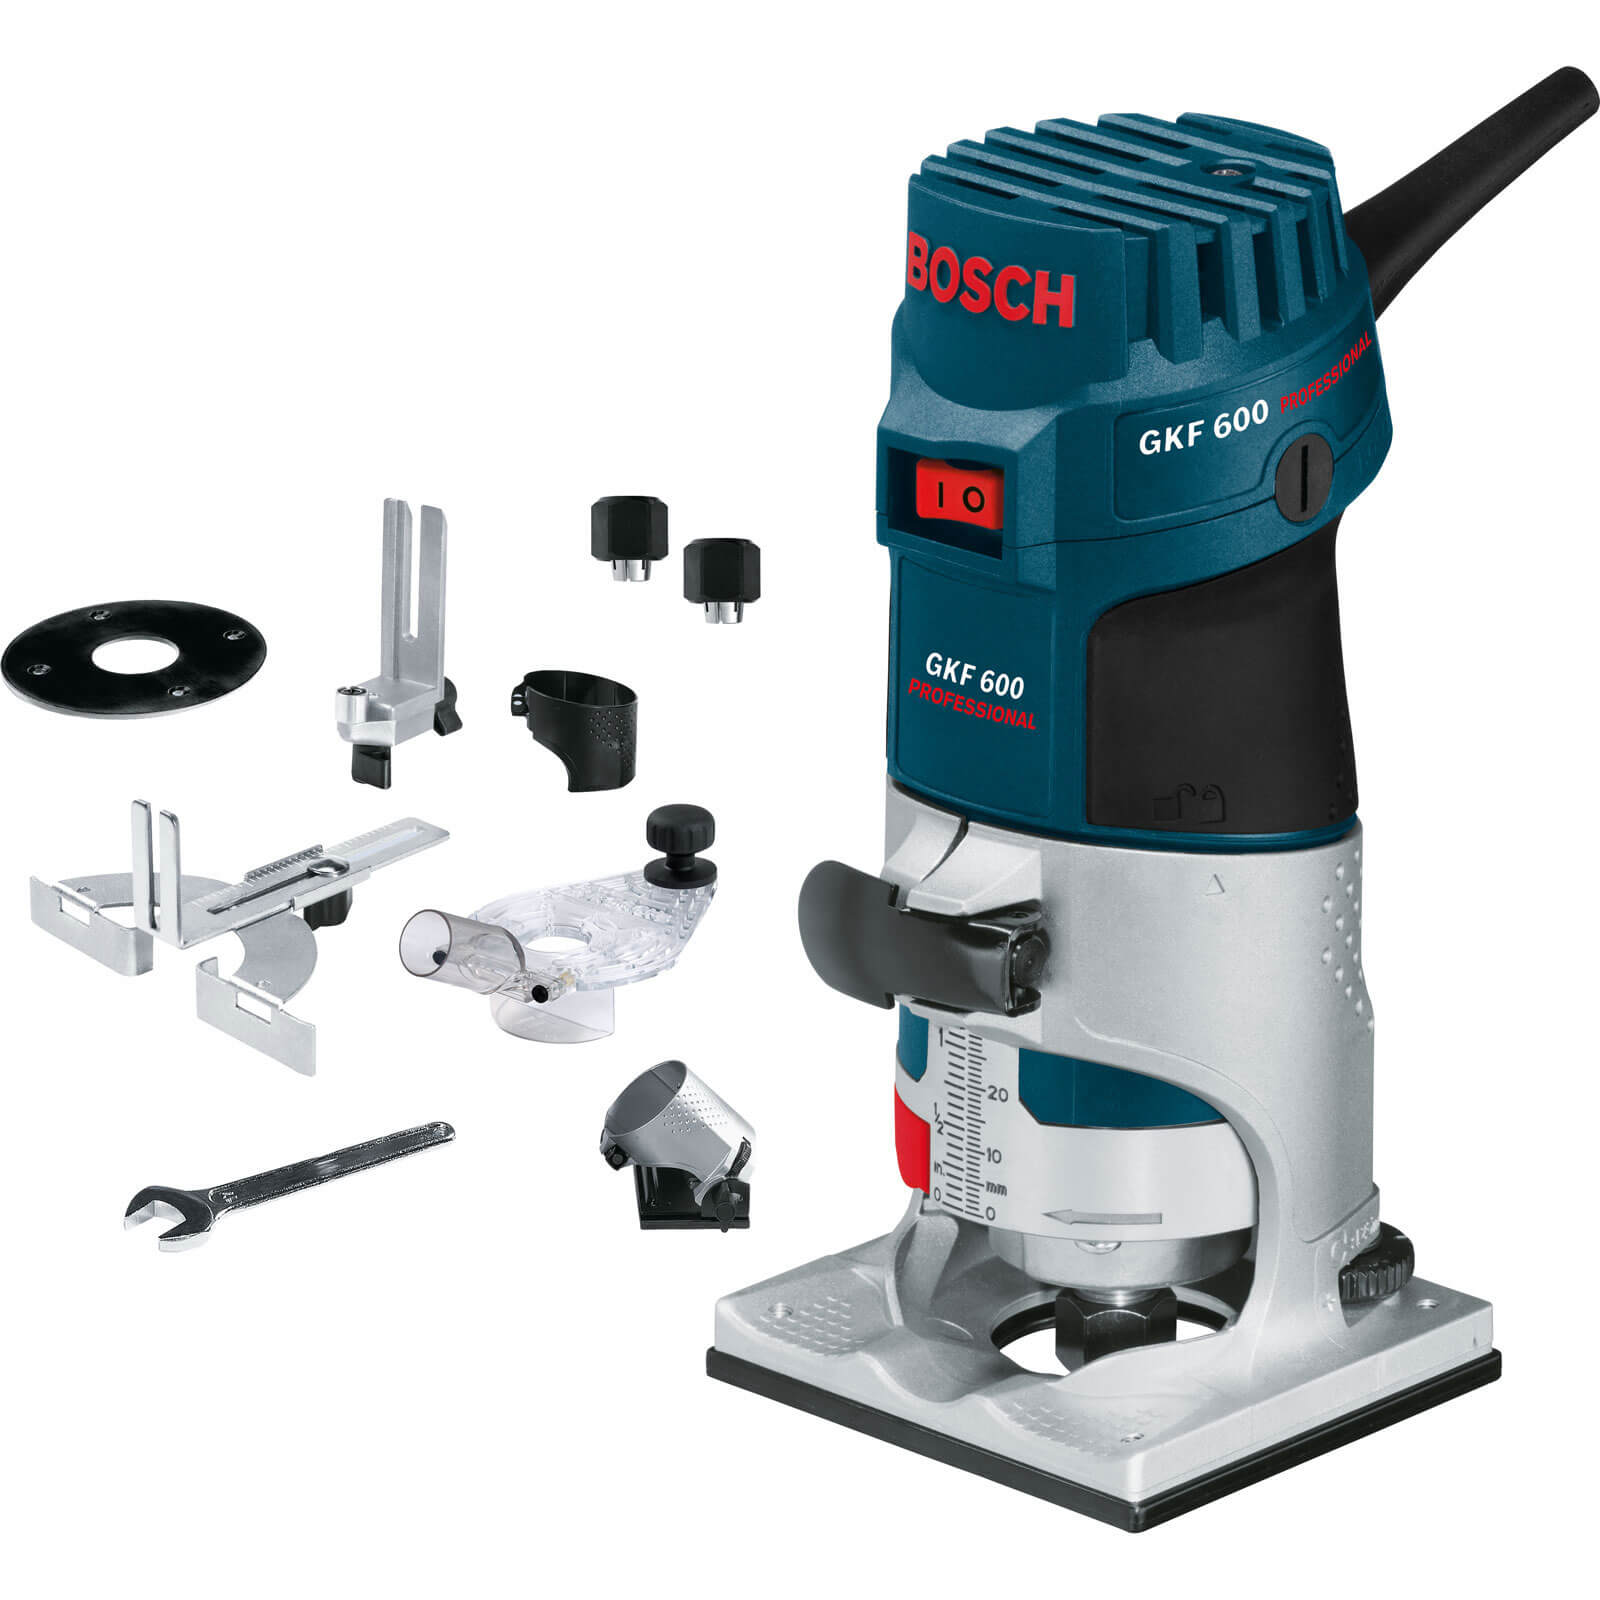 "Image of Bosch GKF 600 1/4"" Compact Fixed Base Palm Router 110v"